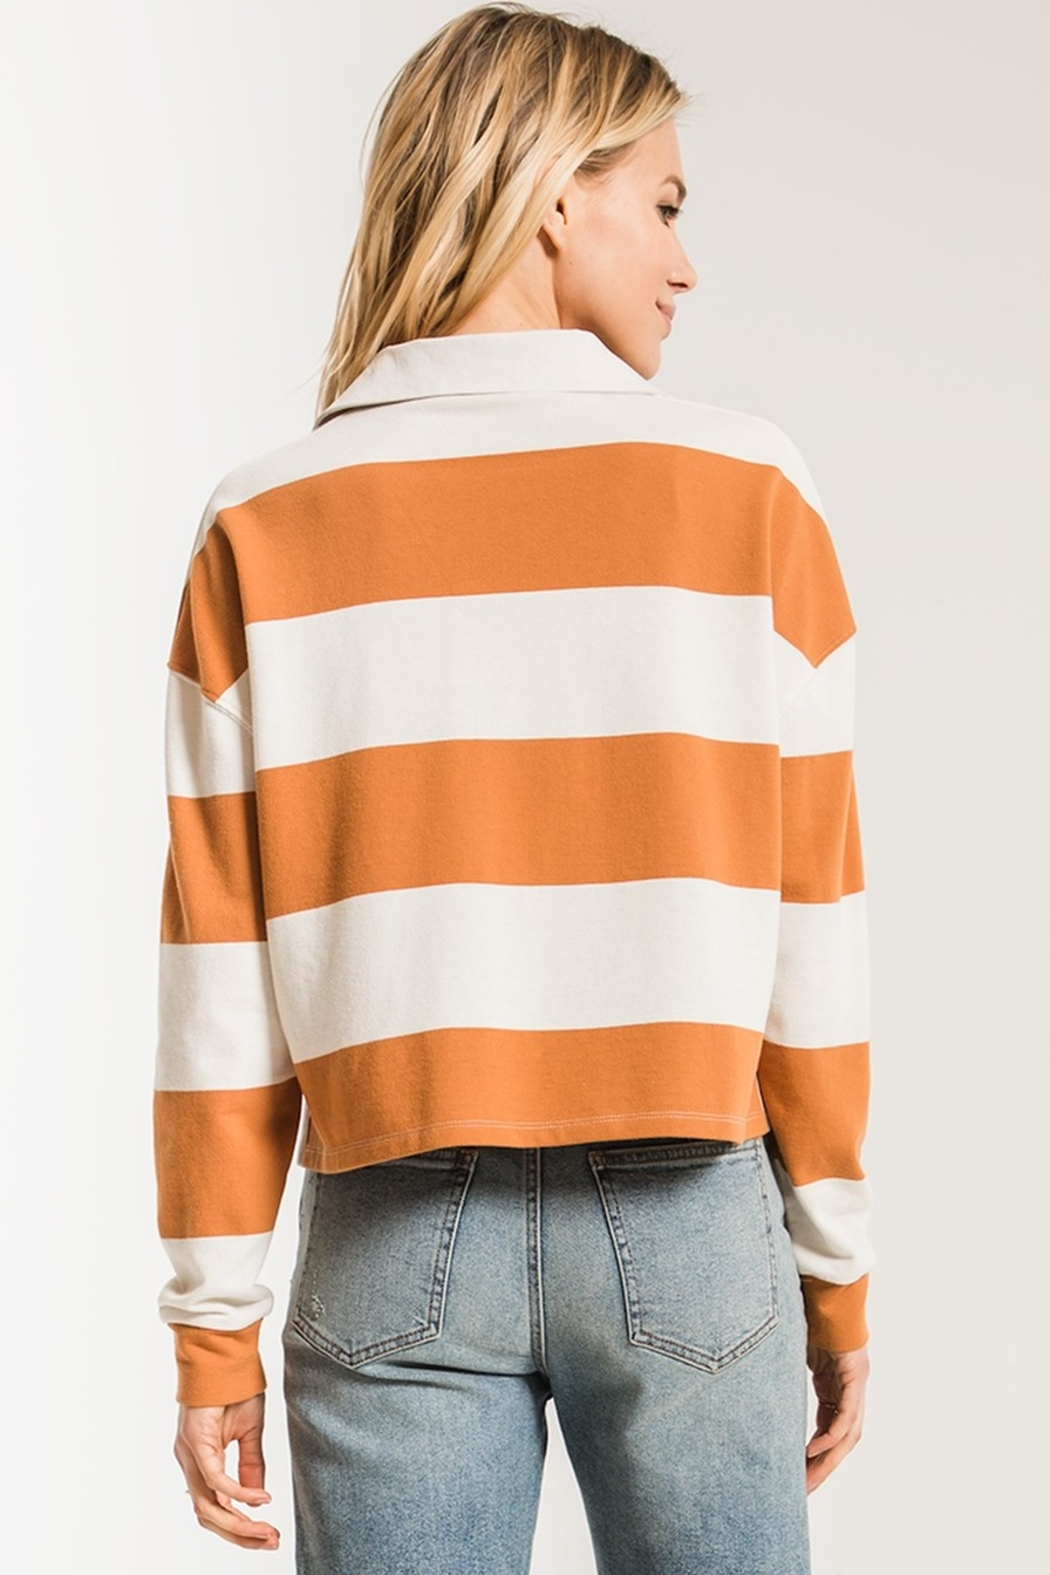 z supply Rugby Striped Collared Shirt - Side Cropped Image